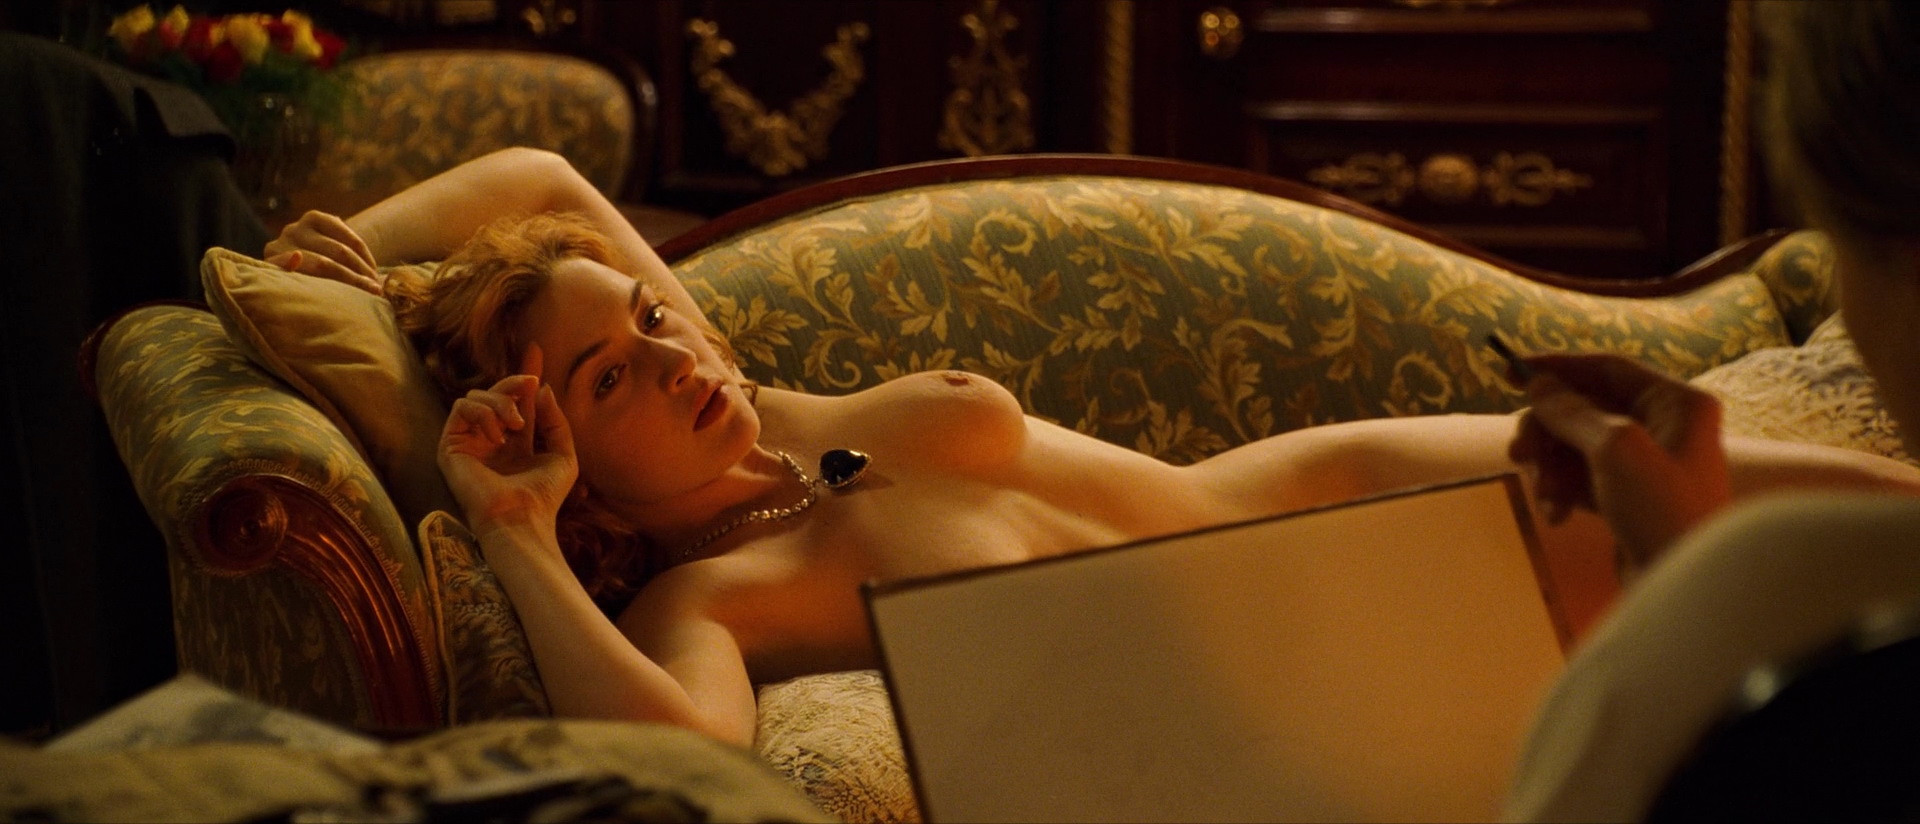 Kate winslet nude the reader